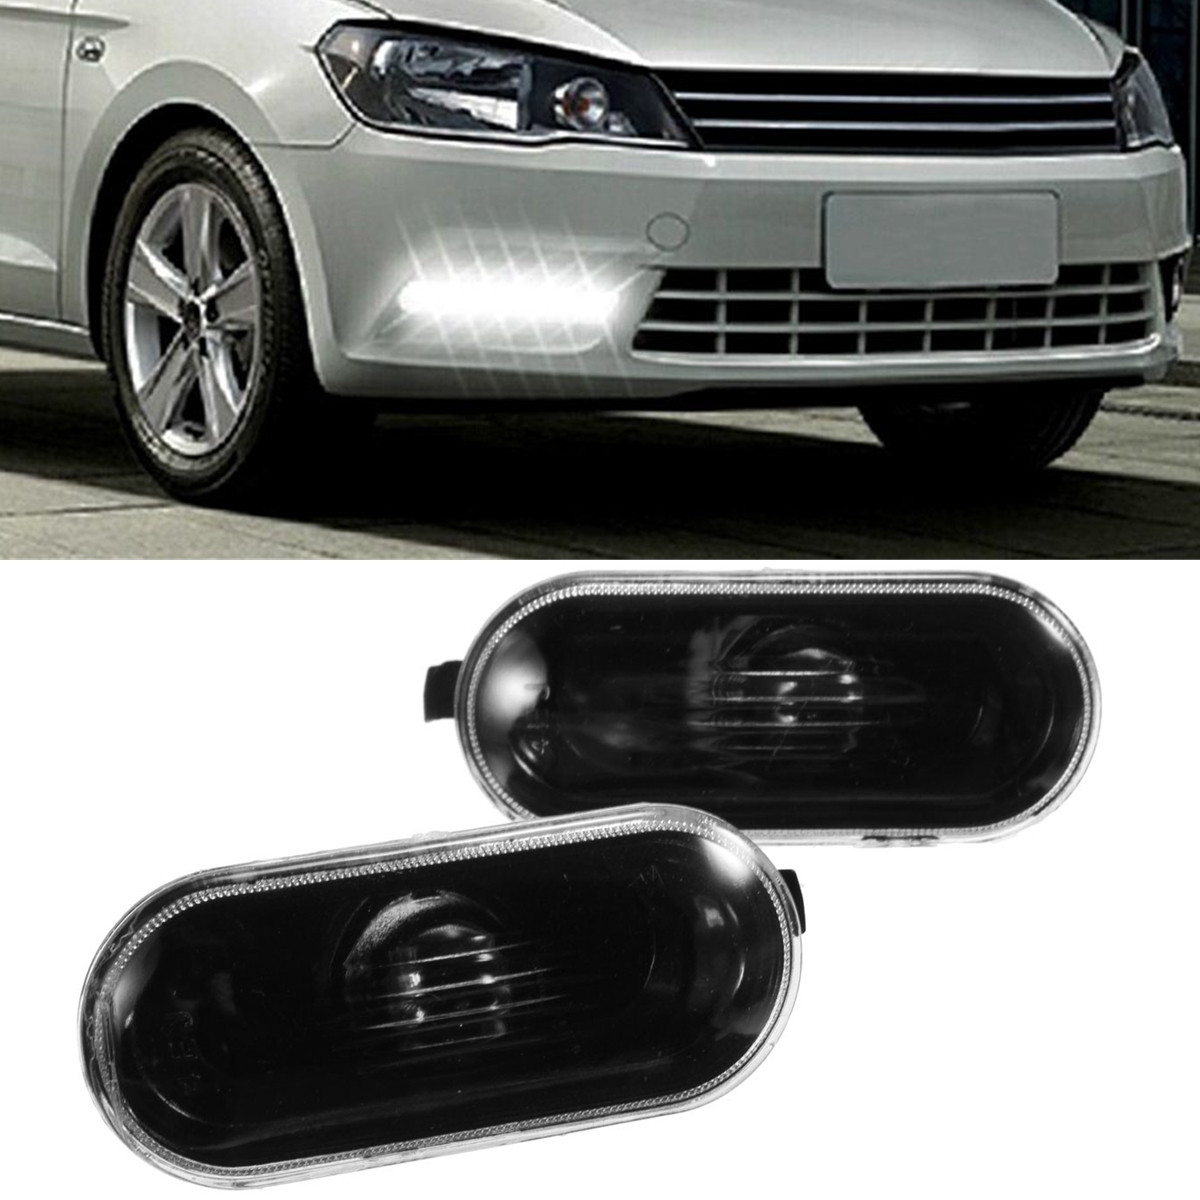 Buy Pair Side Marker Lights(NO Bulbs) for Volkswagen Passat B5/B5.5 Golf /Jetta MK4